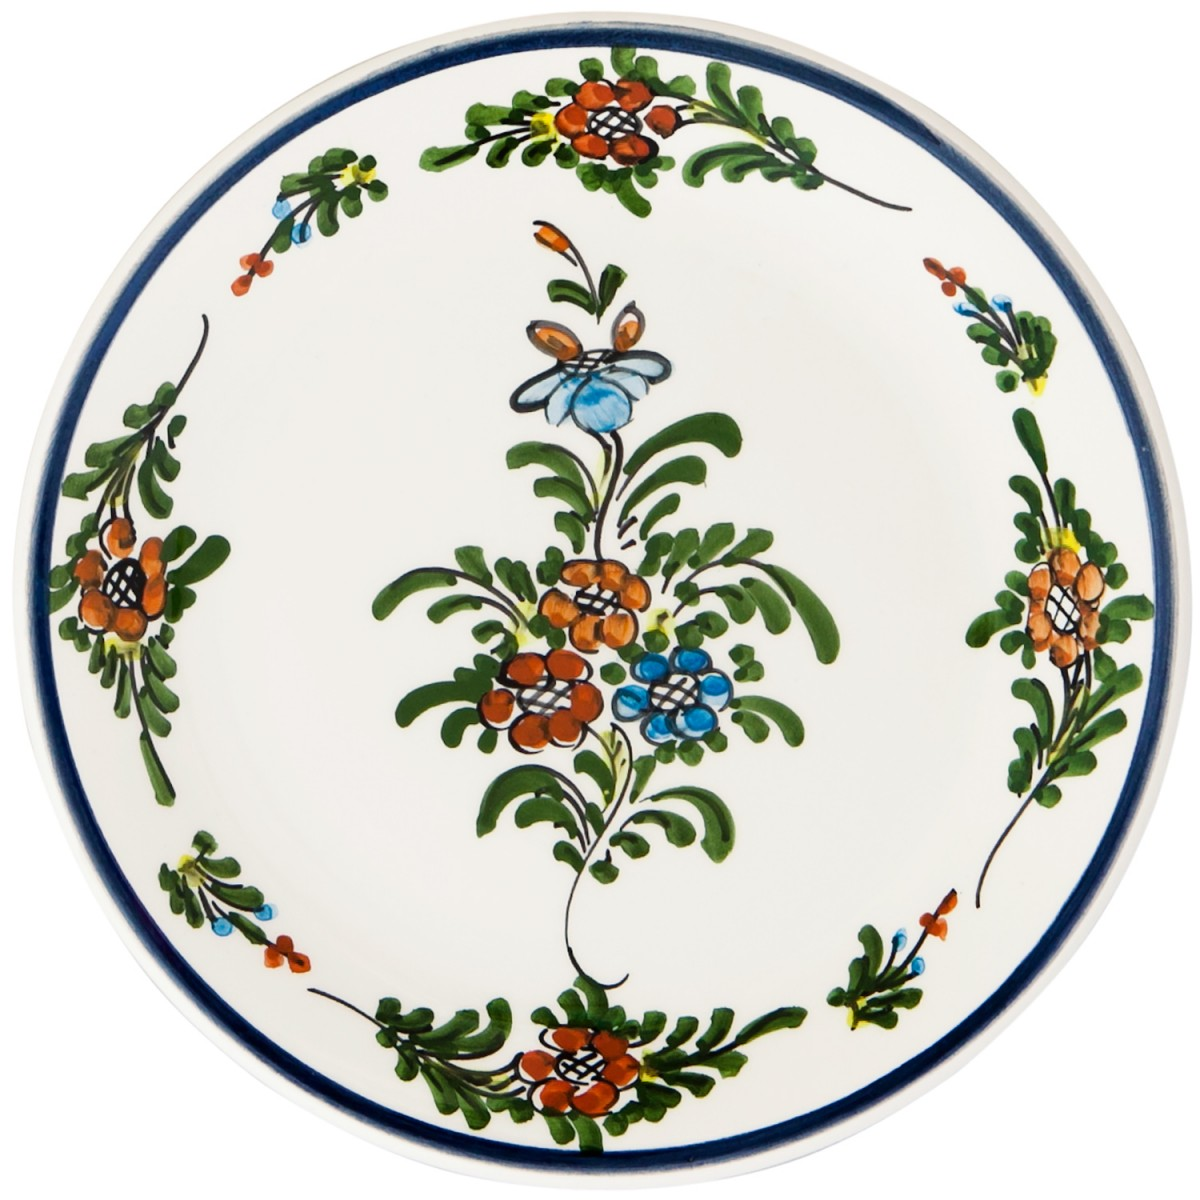 Hand_Painted_Ceramic_Dessert_Decorative_Plate-Eclectic_Flower-Skyriana_Plates-1